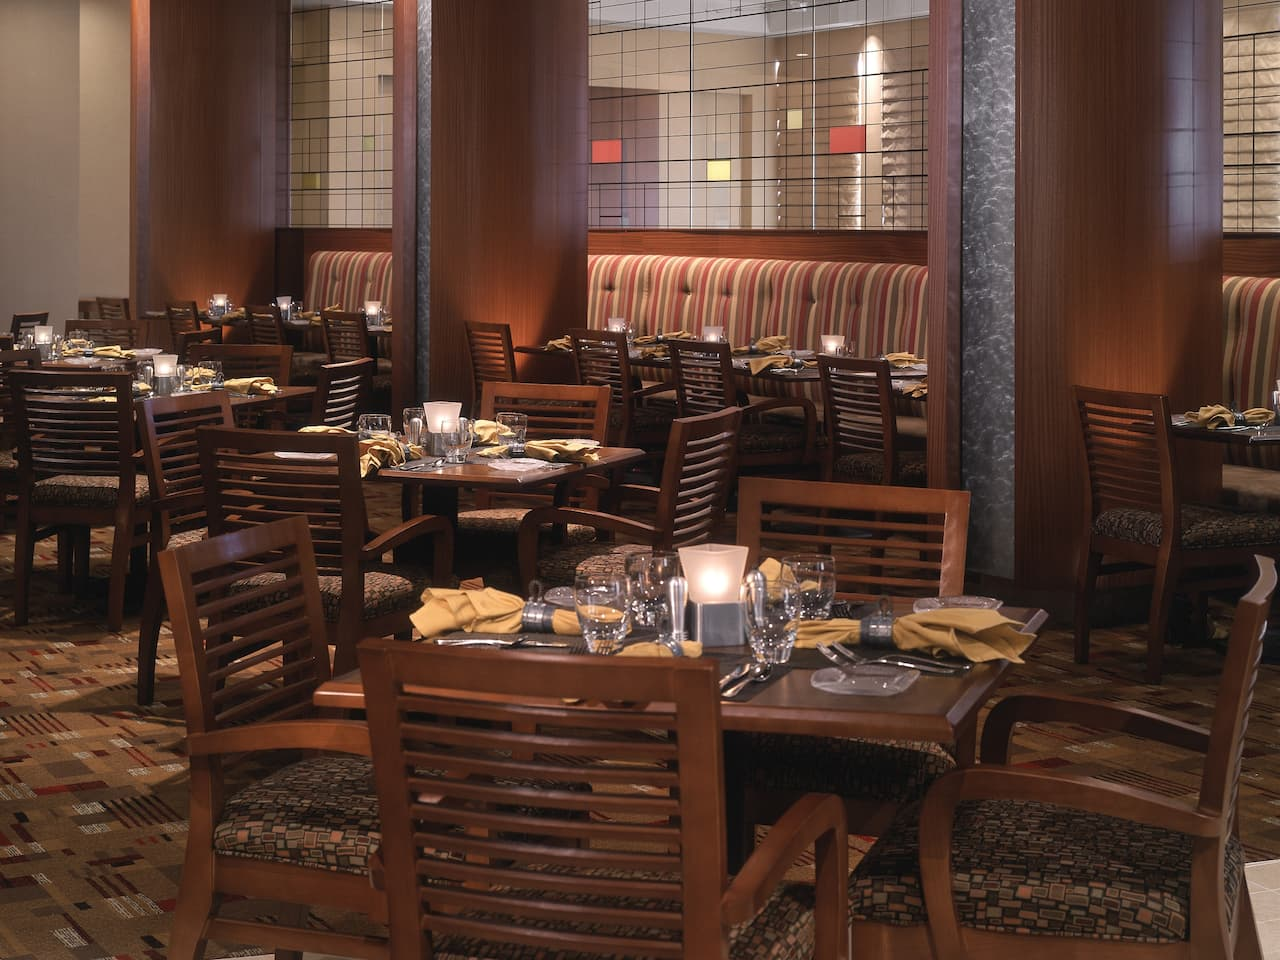 Jacob's Spring Grille seating